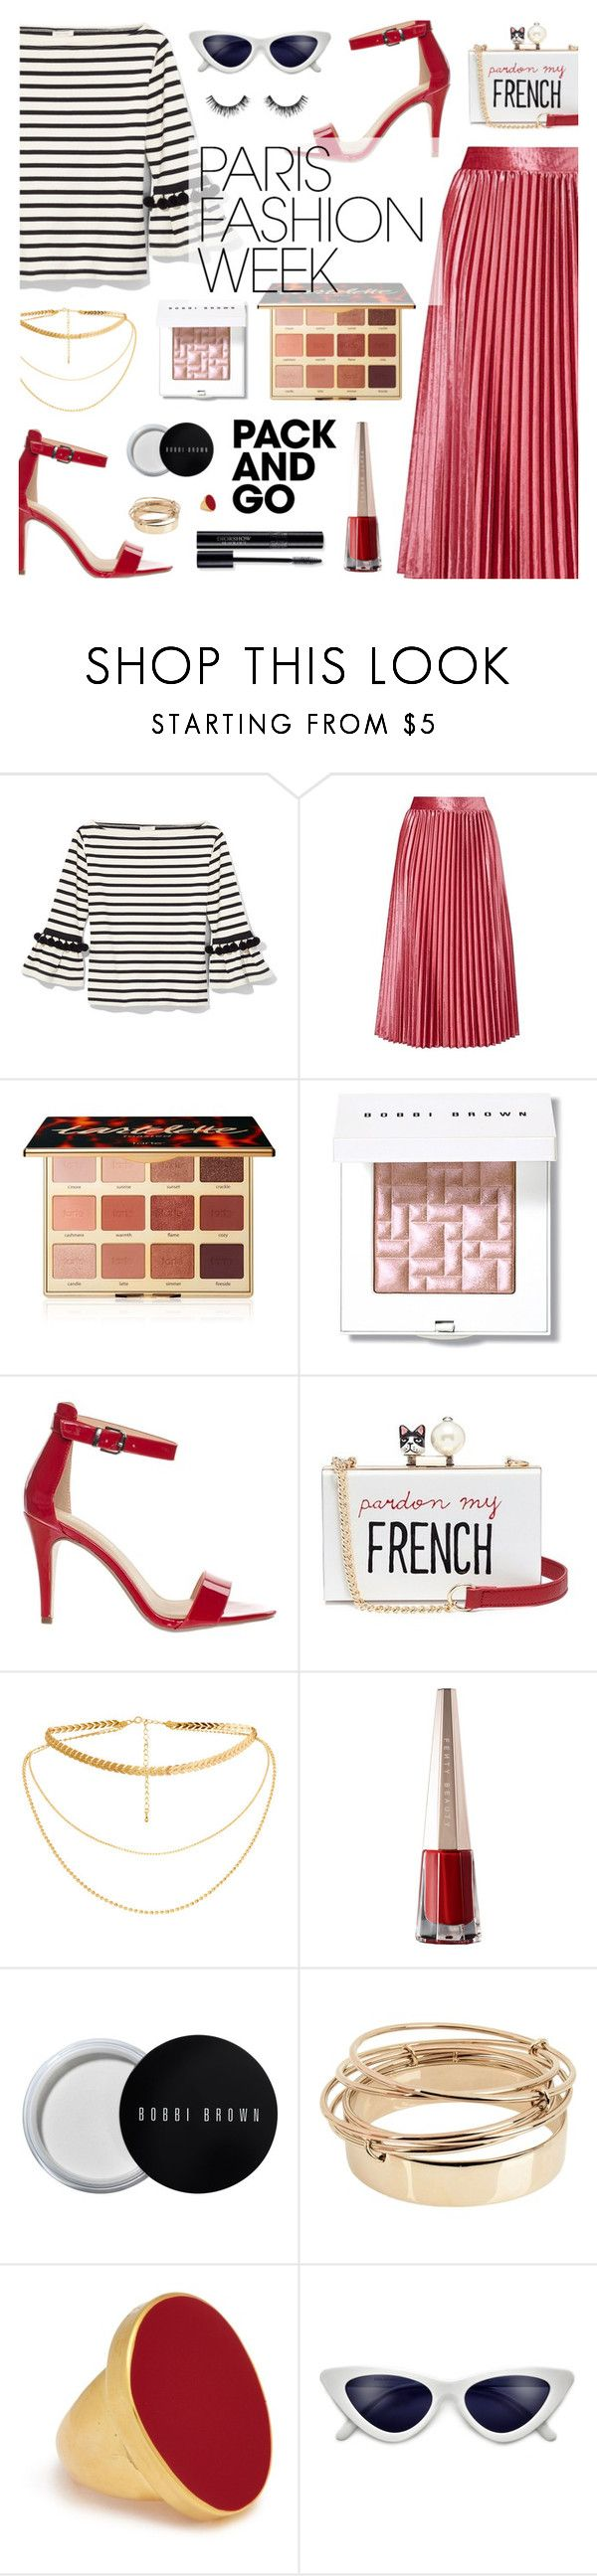 """Pack and Go: Paris Fashion Week"" by dora04 ❤ liked on Polyvore featuring Marc Jacobs, tarte, Bobbi Brown Cosmetics, Classified, Cecilia Ma, Valentino, Kenneth Jay Lane, Velour Lashes, parisfashionweek and Packandgo"